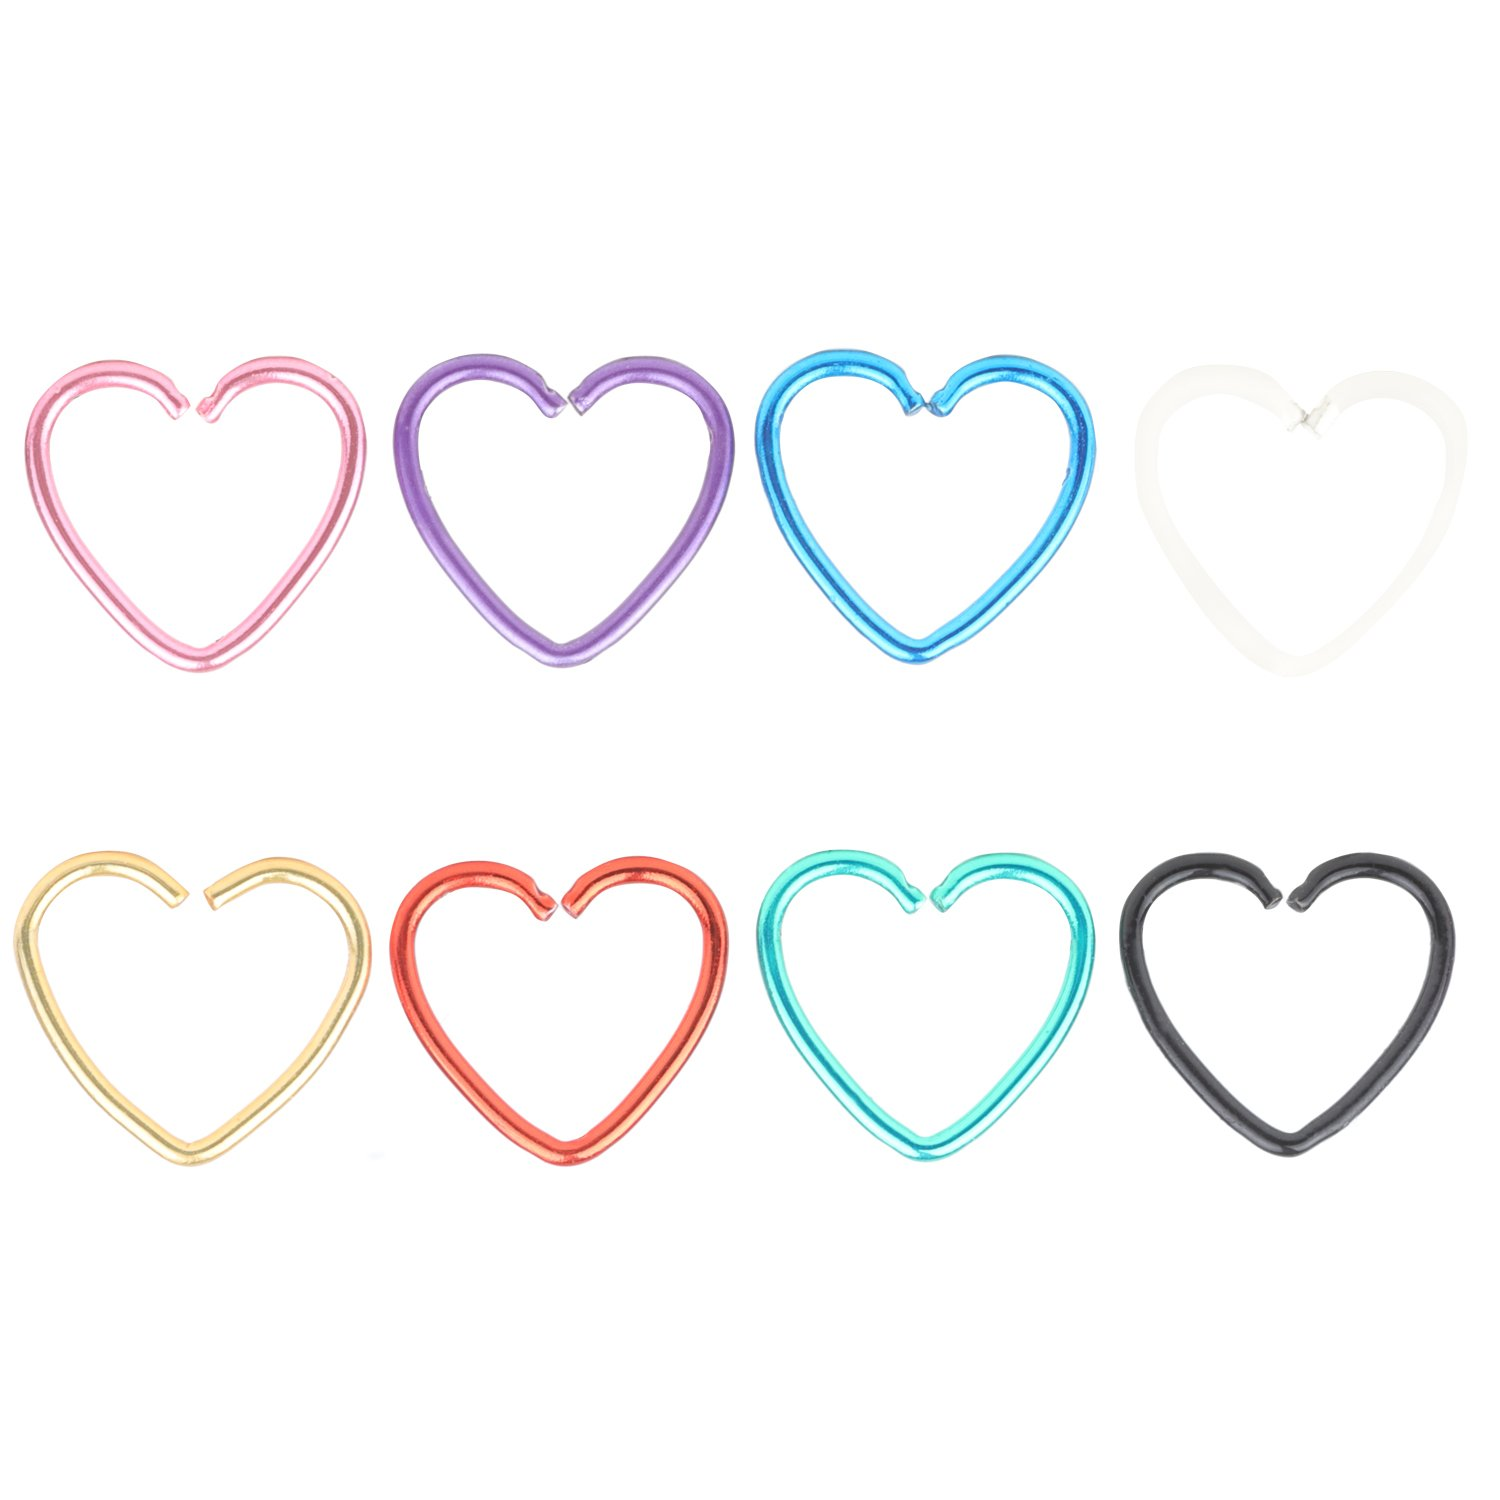 DRW 8pcs 20G Stainless Steel Tiny Niobium Heart Captive Ring Daith Ear Cartilage Earring Rook Tragus Helix Piercing Nose Ring Nose Hoop